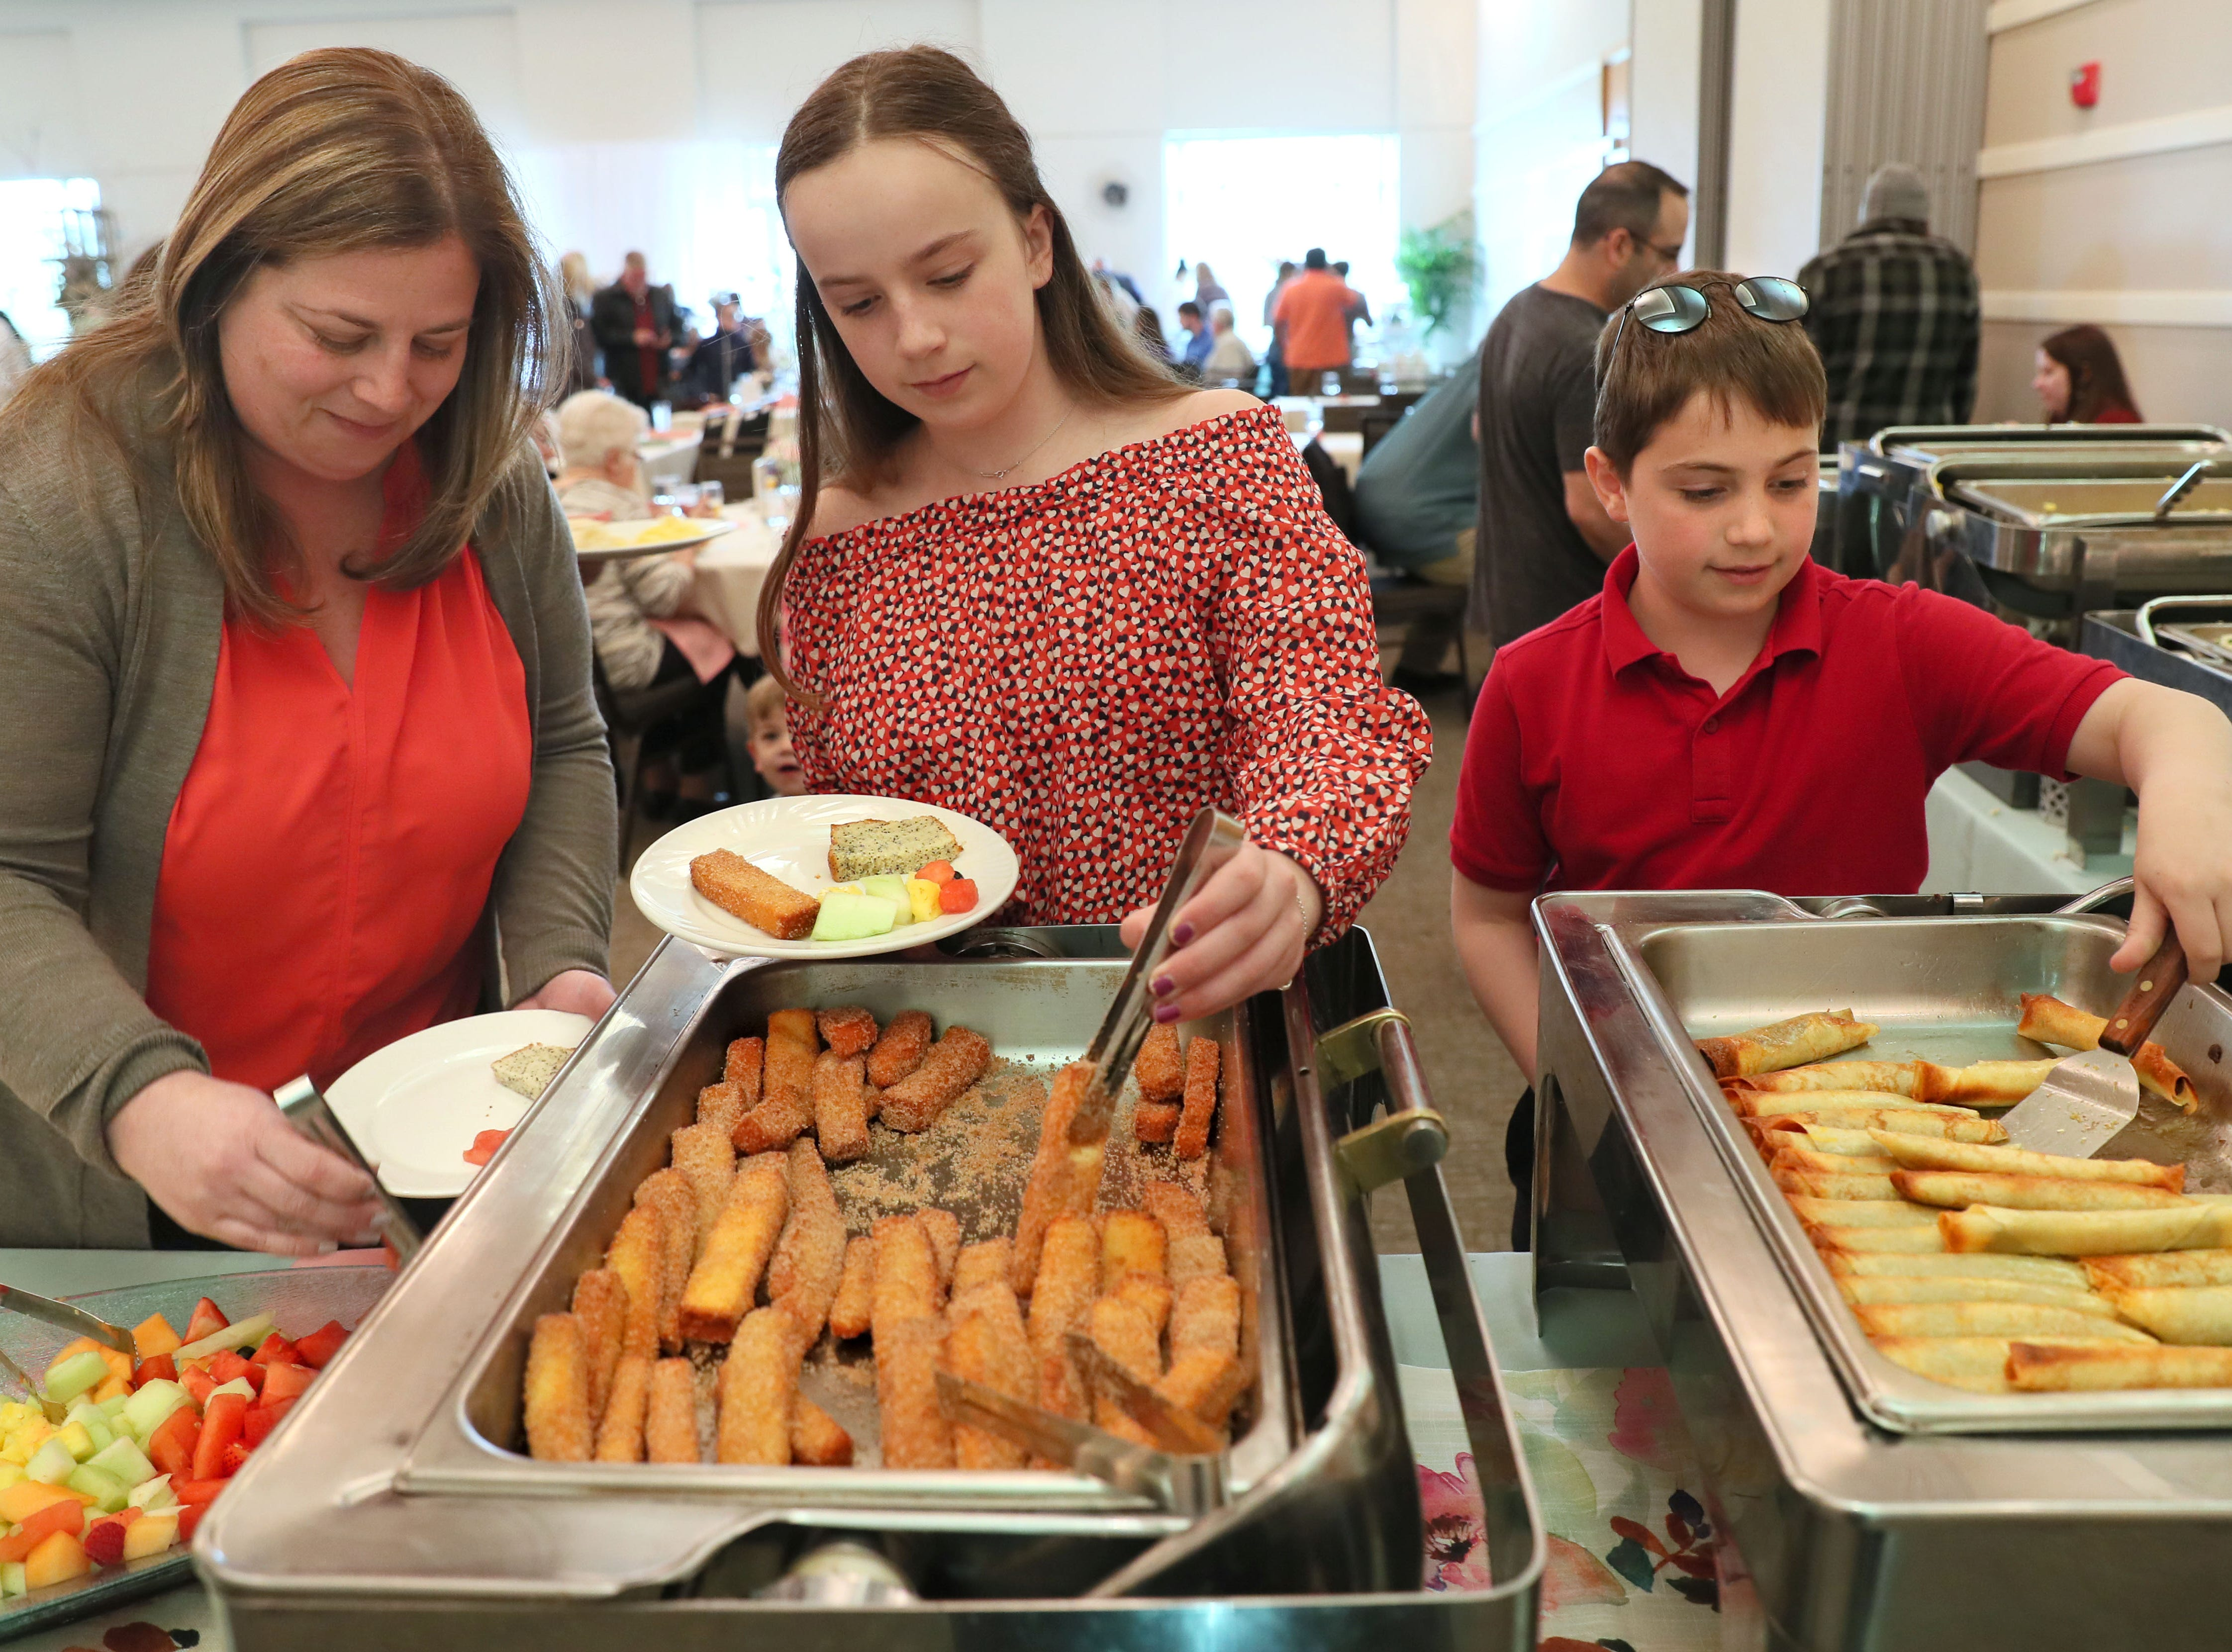 Stephanie Dykeman, left, of Bayside and her two children, Grace, 12, and Max, 10, help themselves to the brunch offered at the Education and Visitor Center.